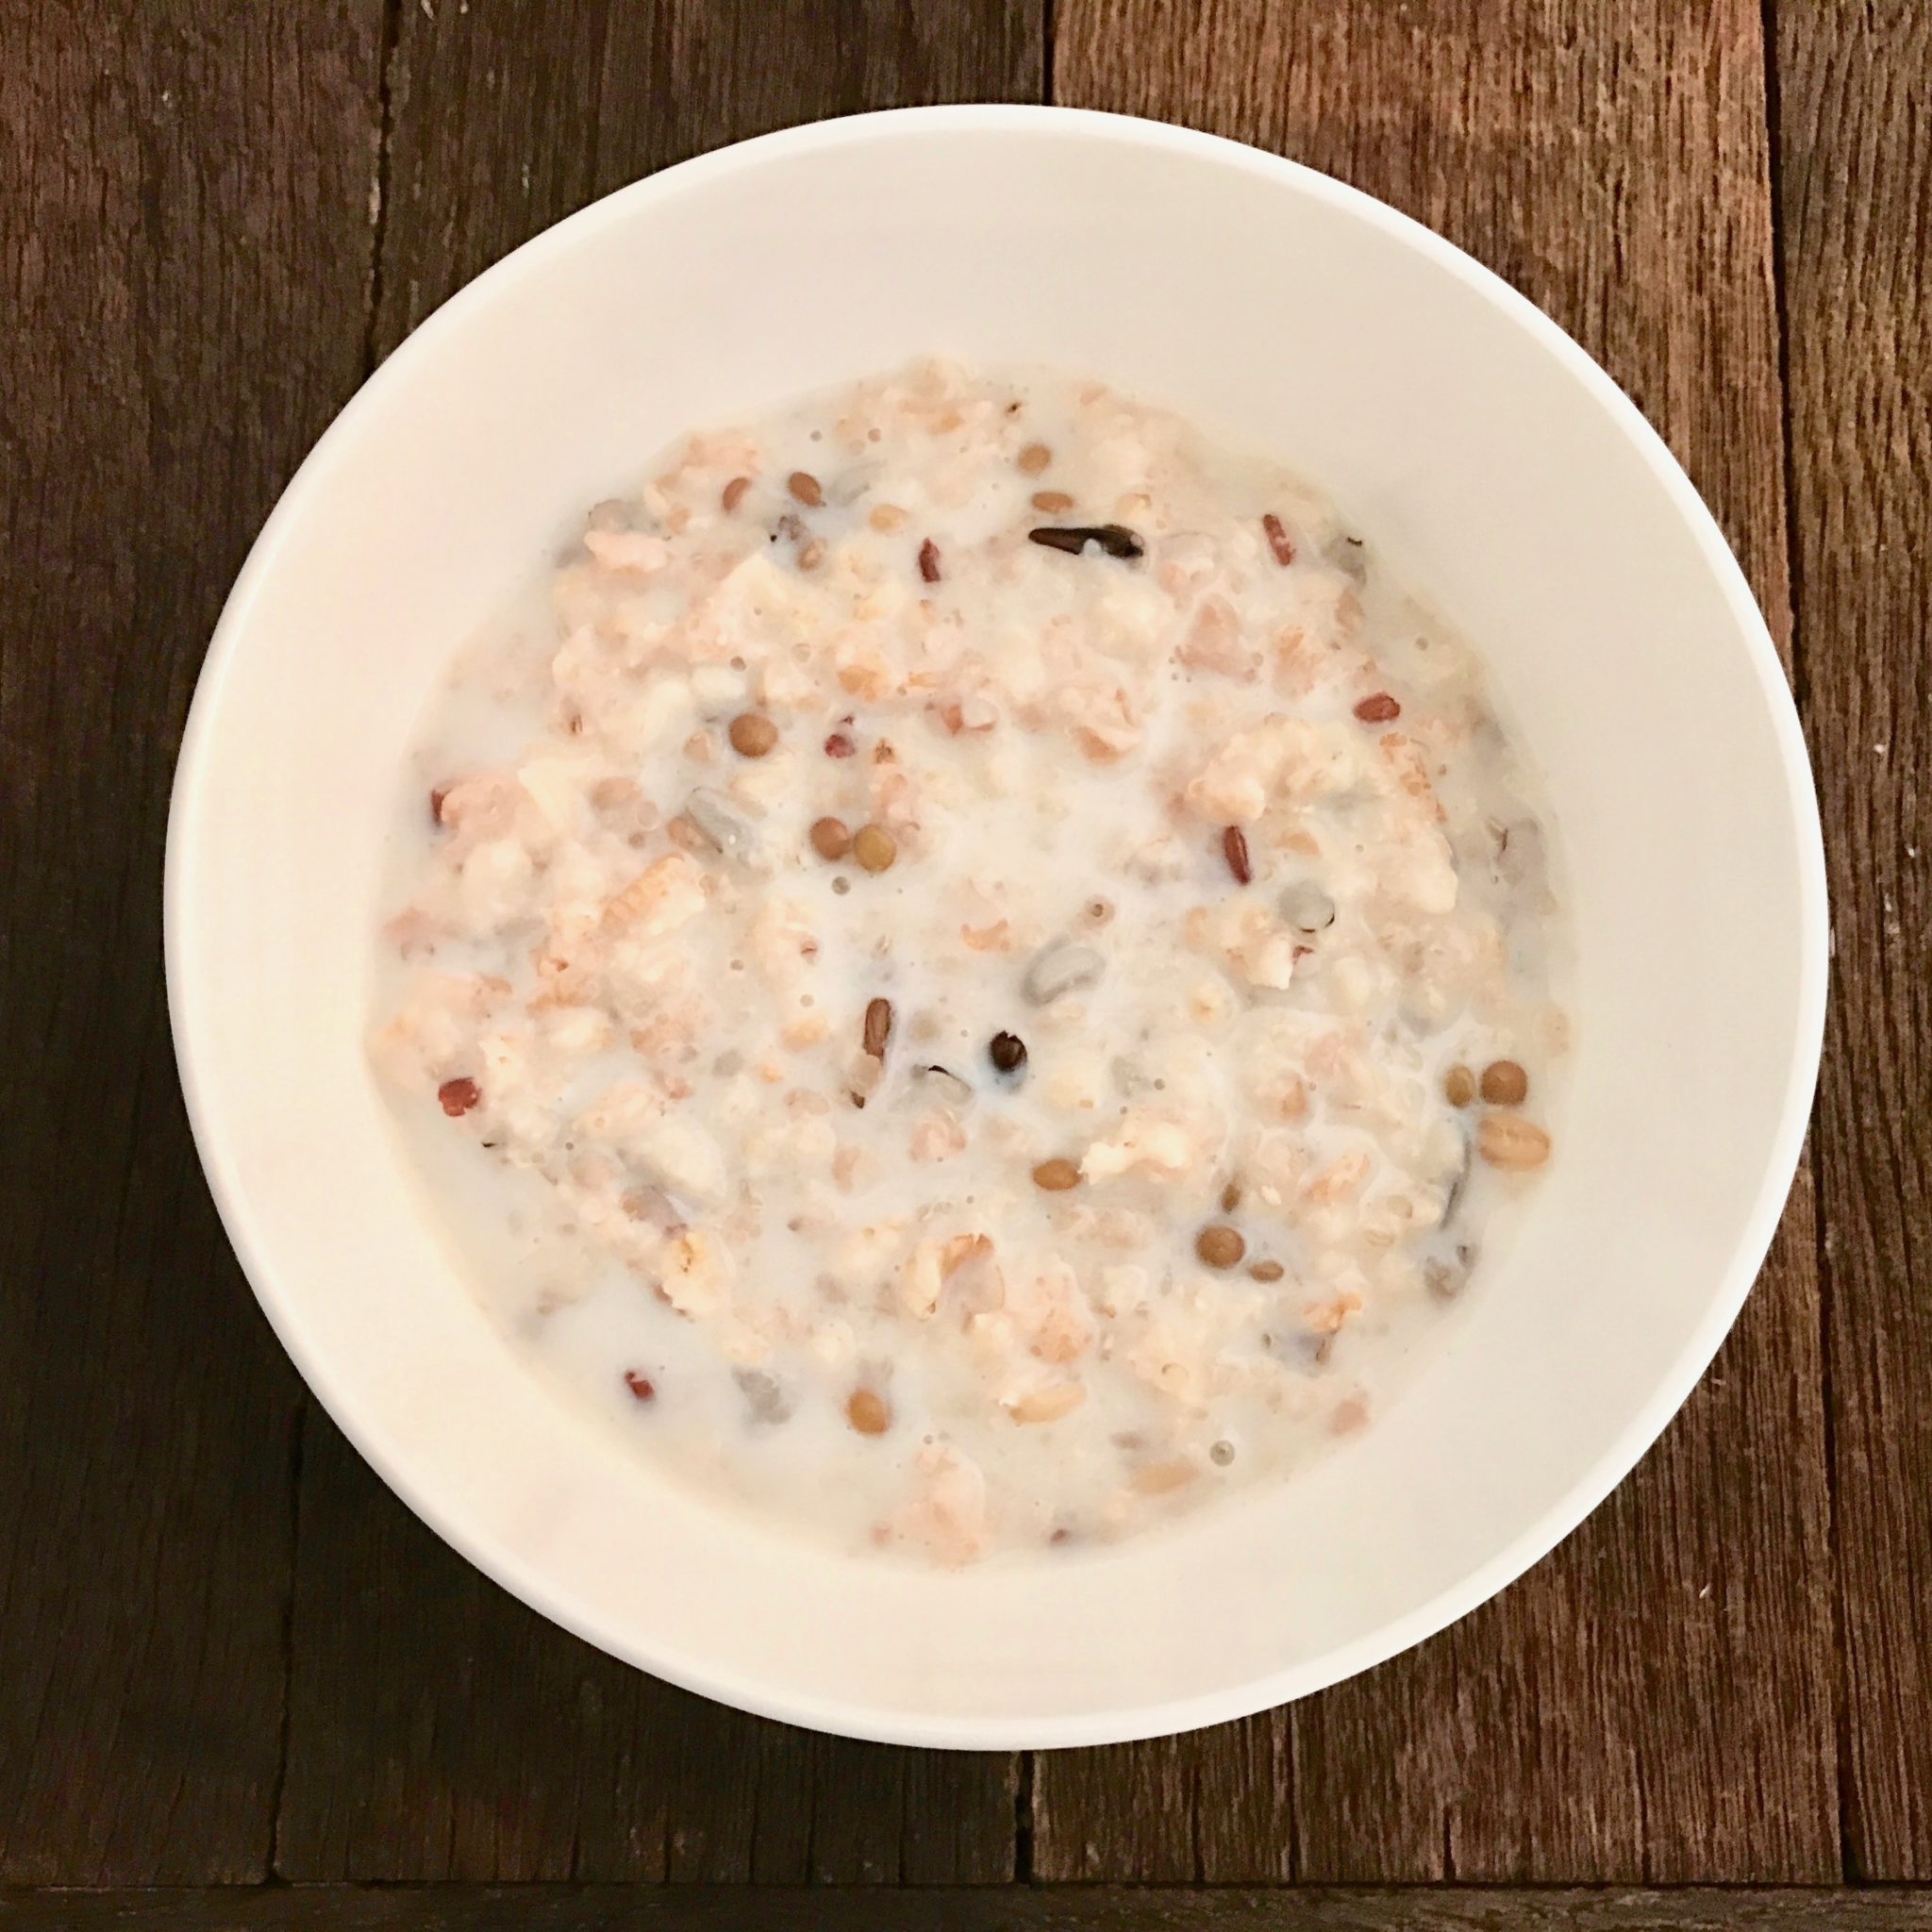 a bowl of fermented- mixed whole grains j